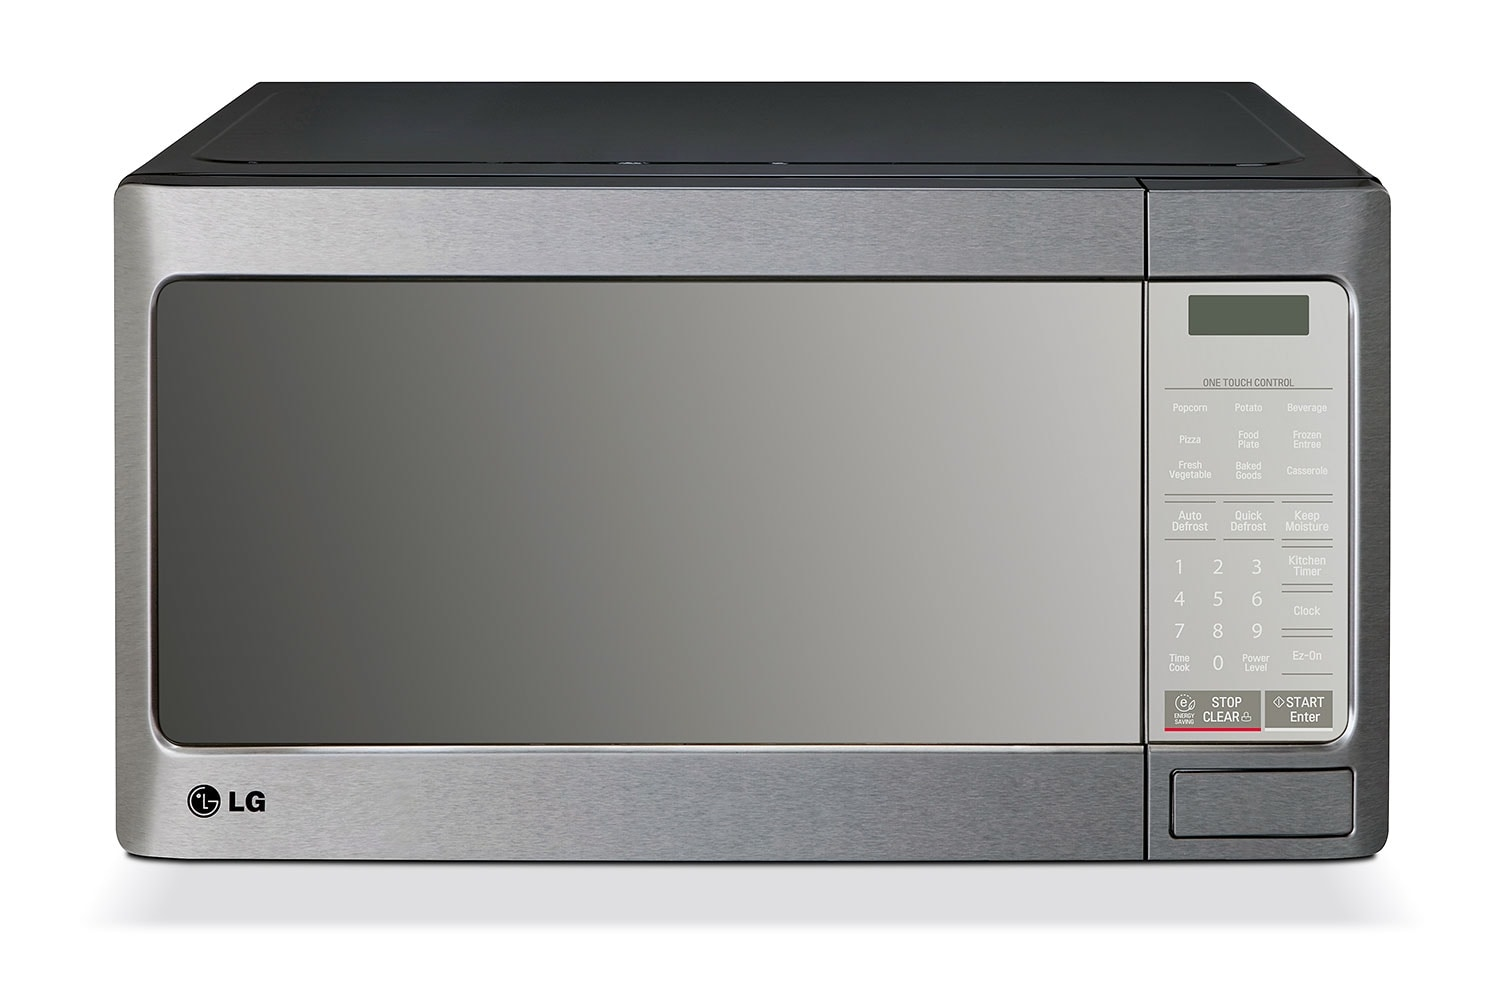 Cooking Products - LG Appliances Stainless Steel Microwave (1.1 Cu. Ft.) - LMC1195ST